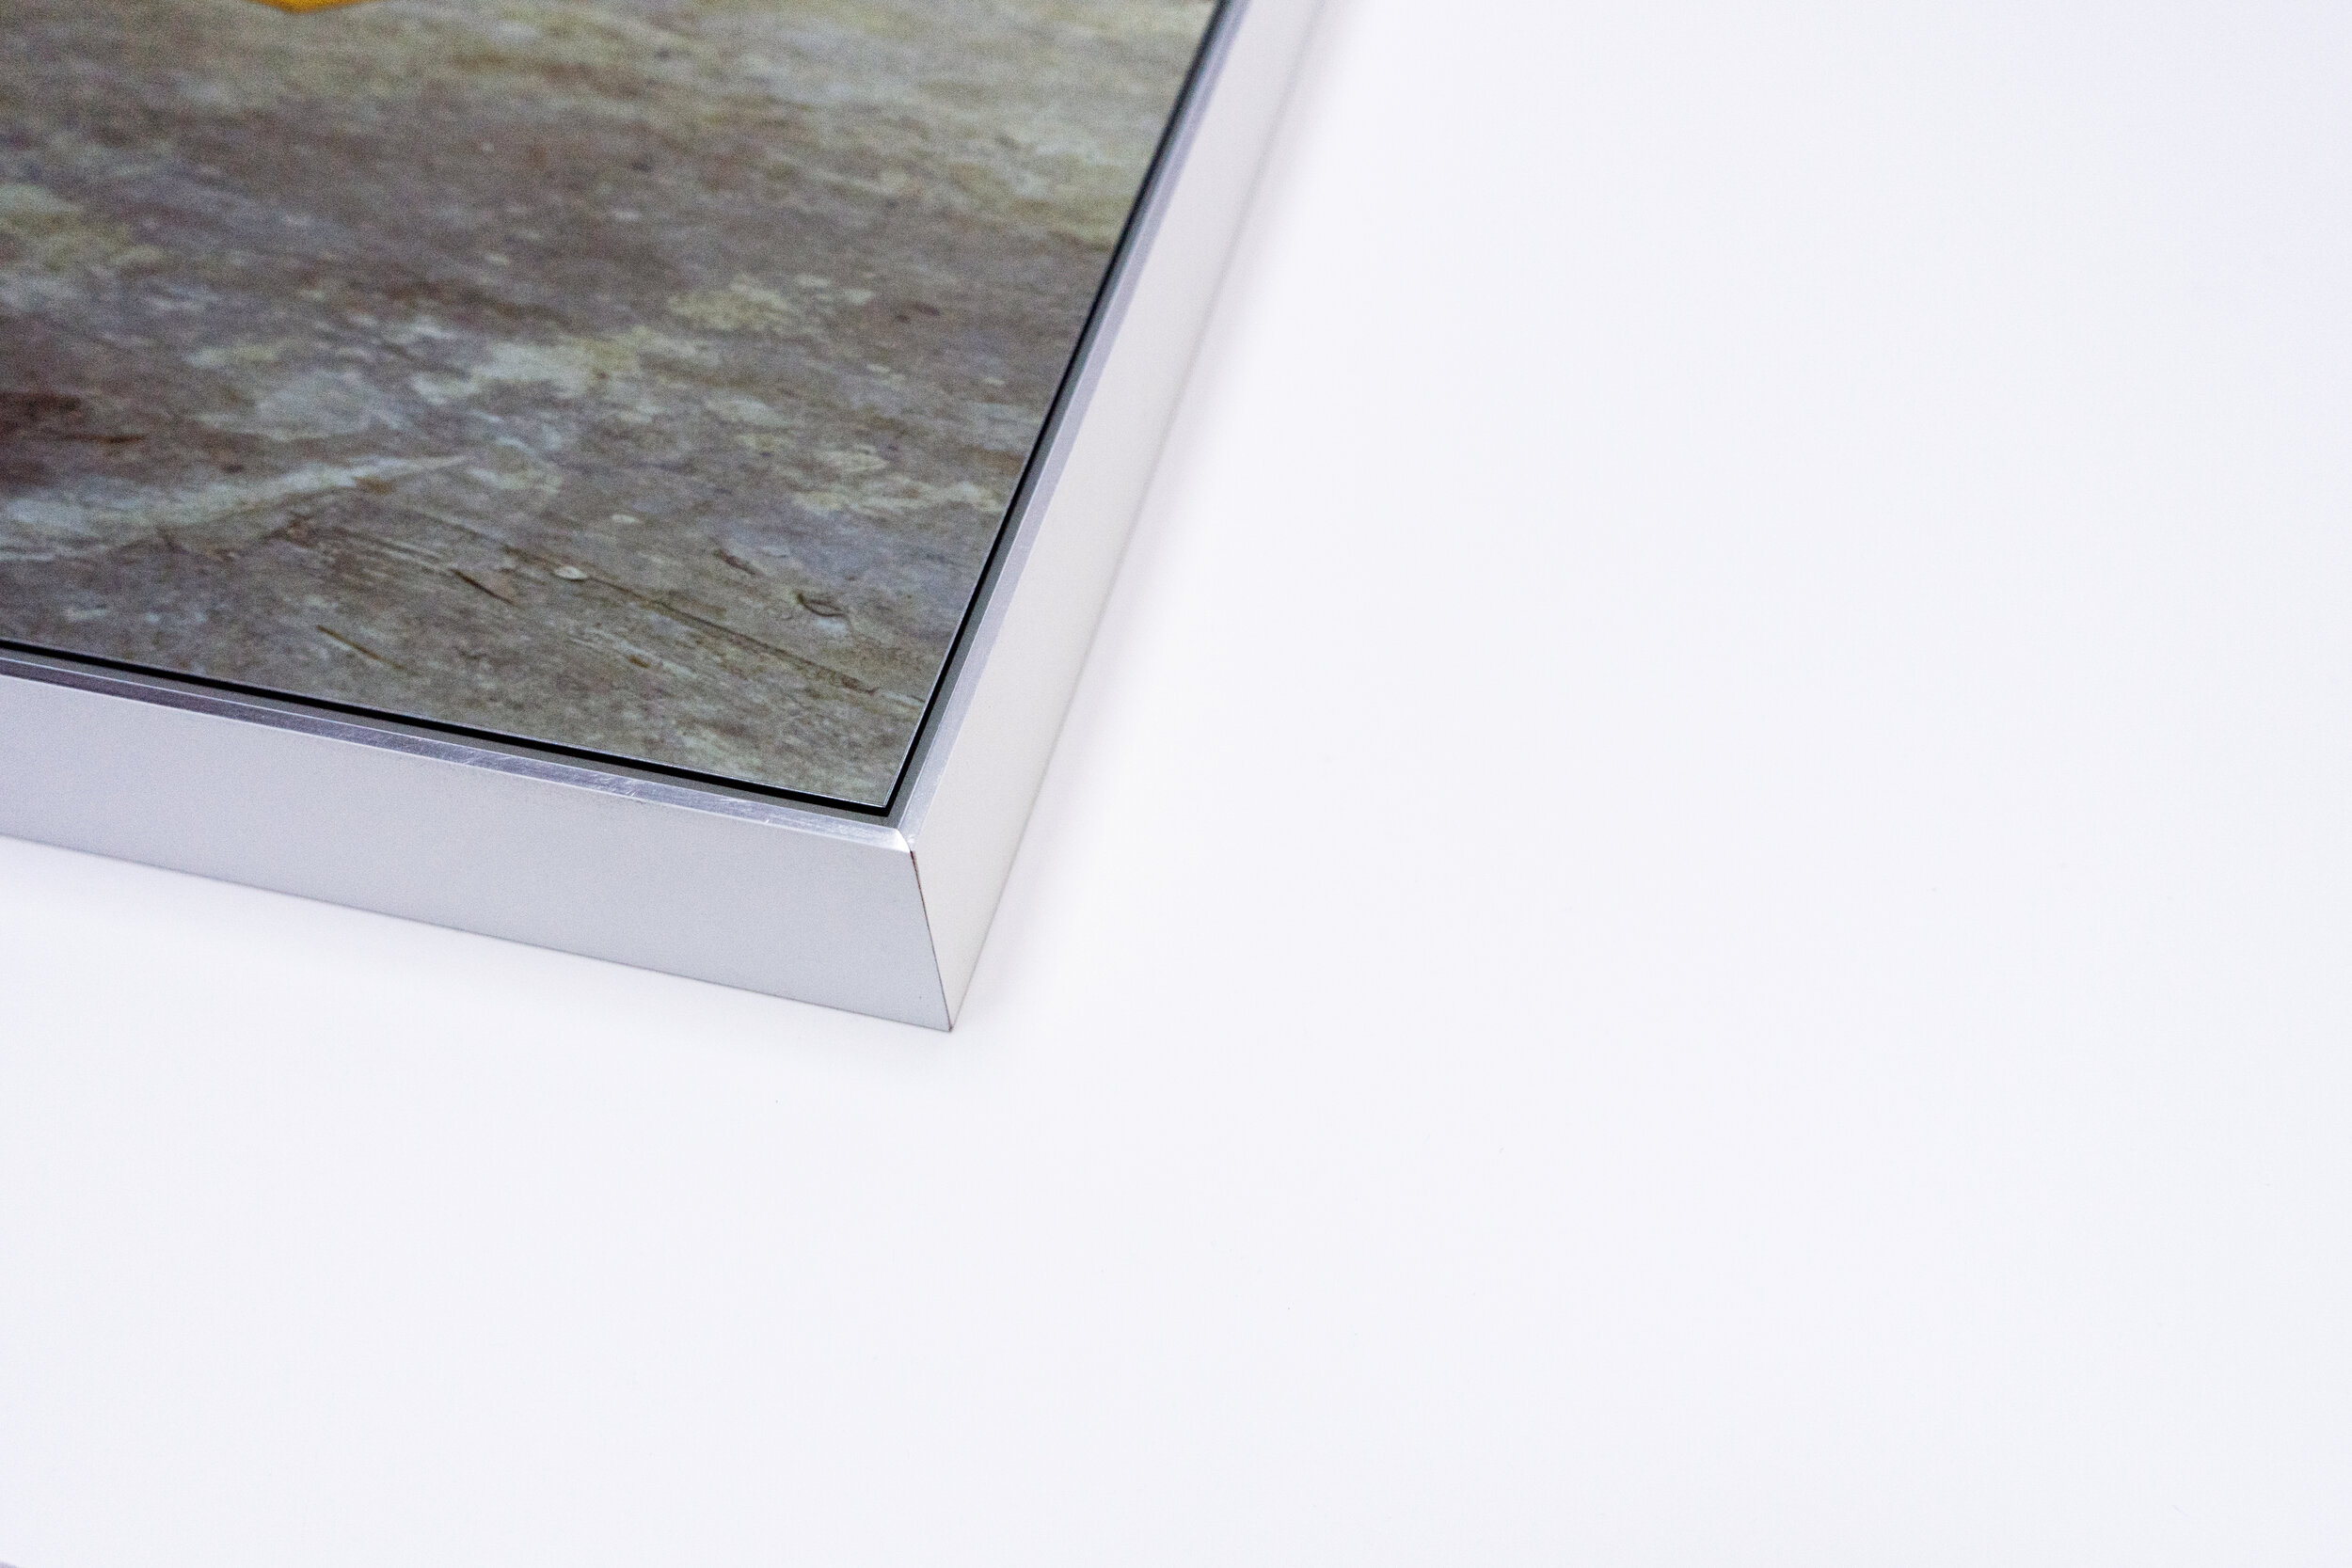 Image: A photograph mounted to an aluminum panel.